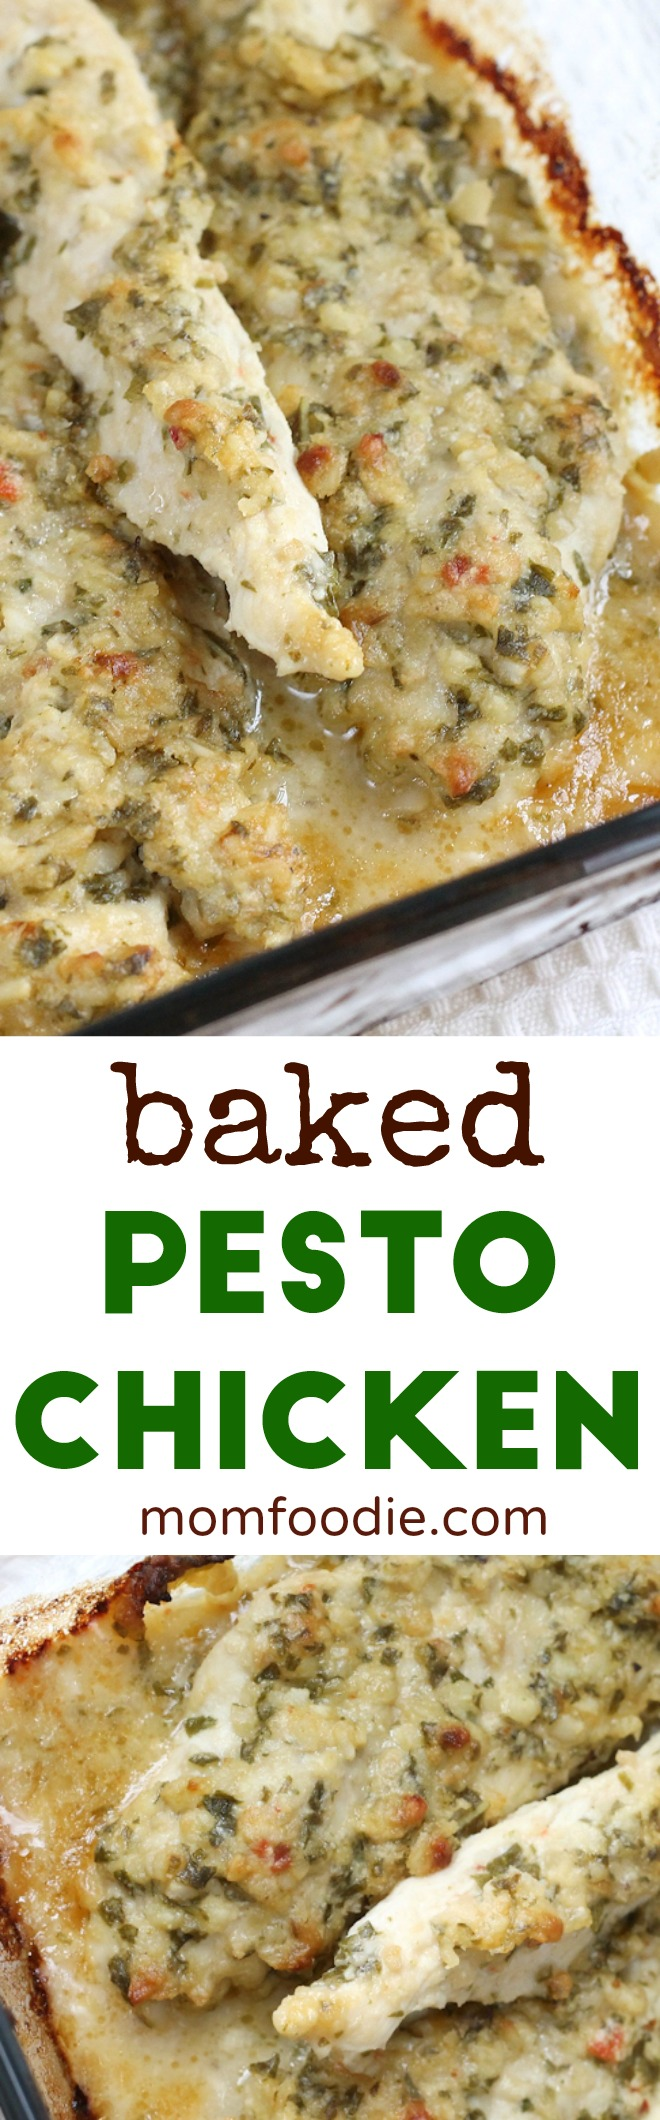 Baked Pesto Chicken Recipe #chickenrecipes #pesto #casserole